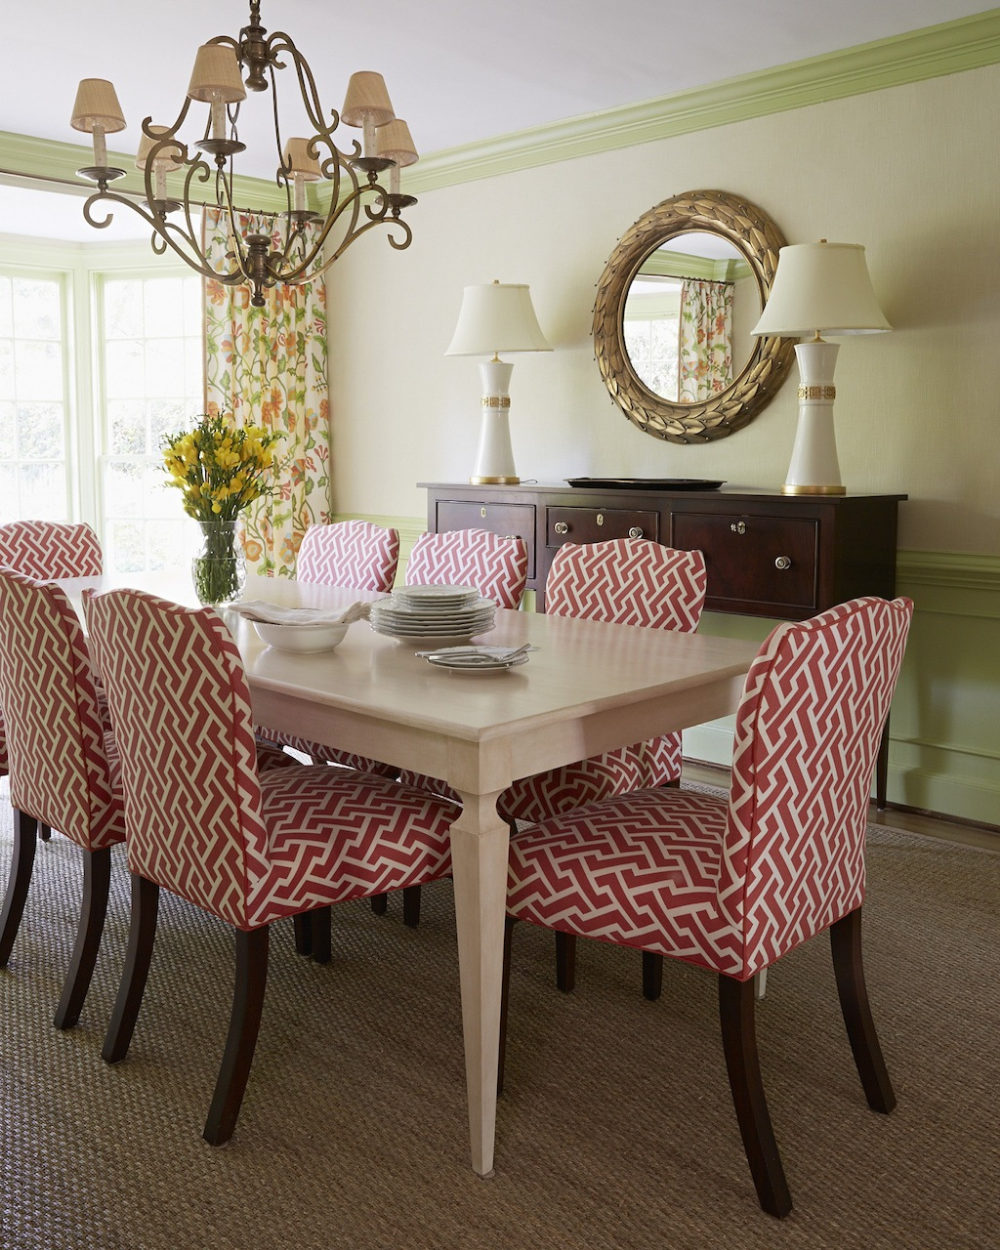 Small Casual Dining Room Ideas: Chinoiserie Design Done Right